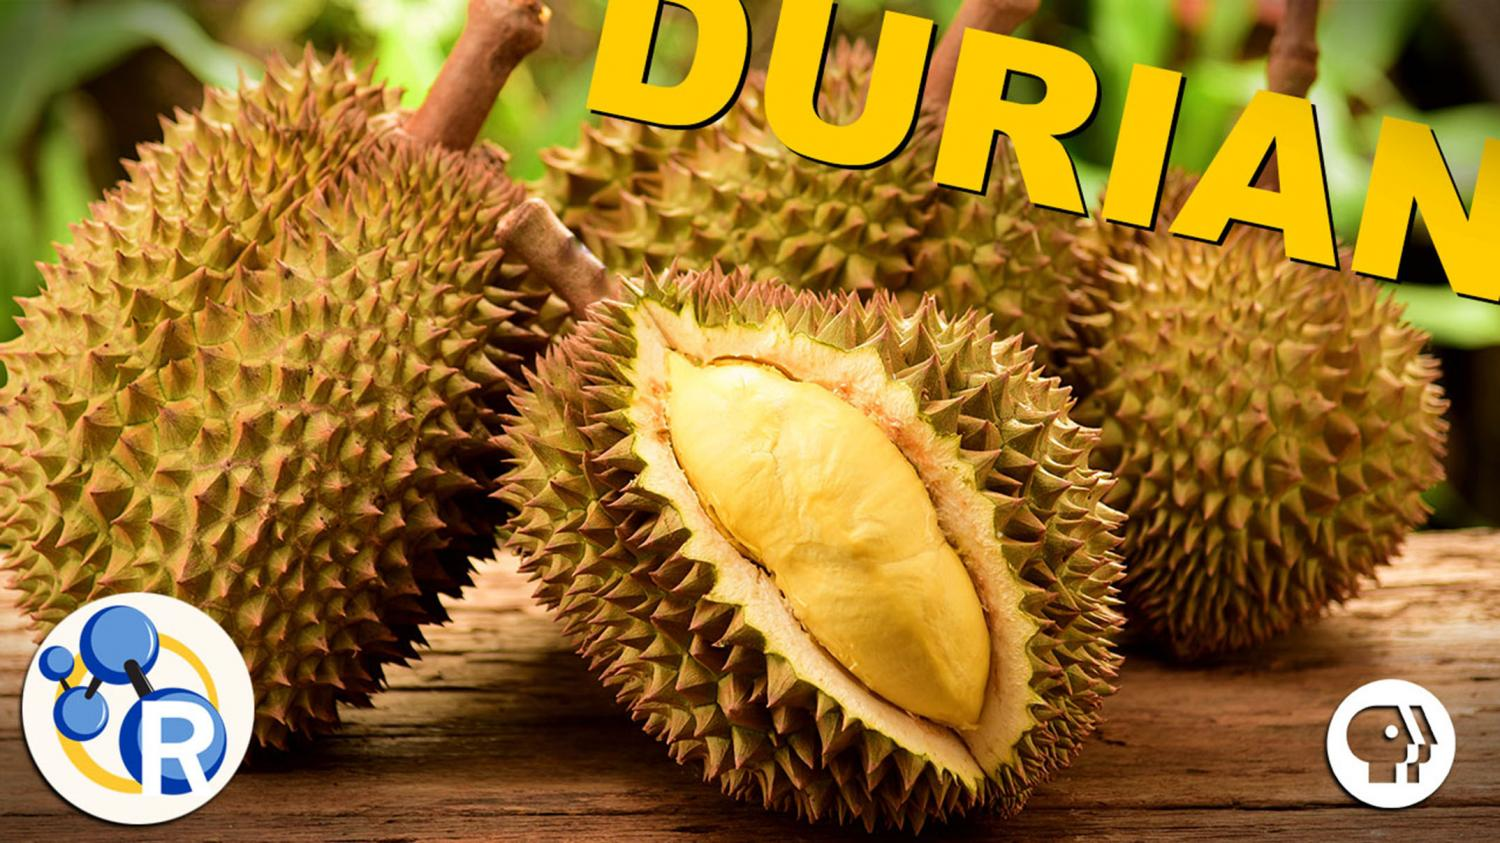 smelly fruit durian fruit